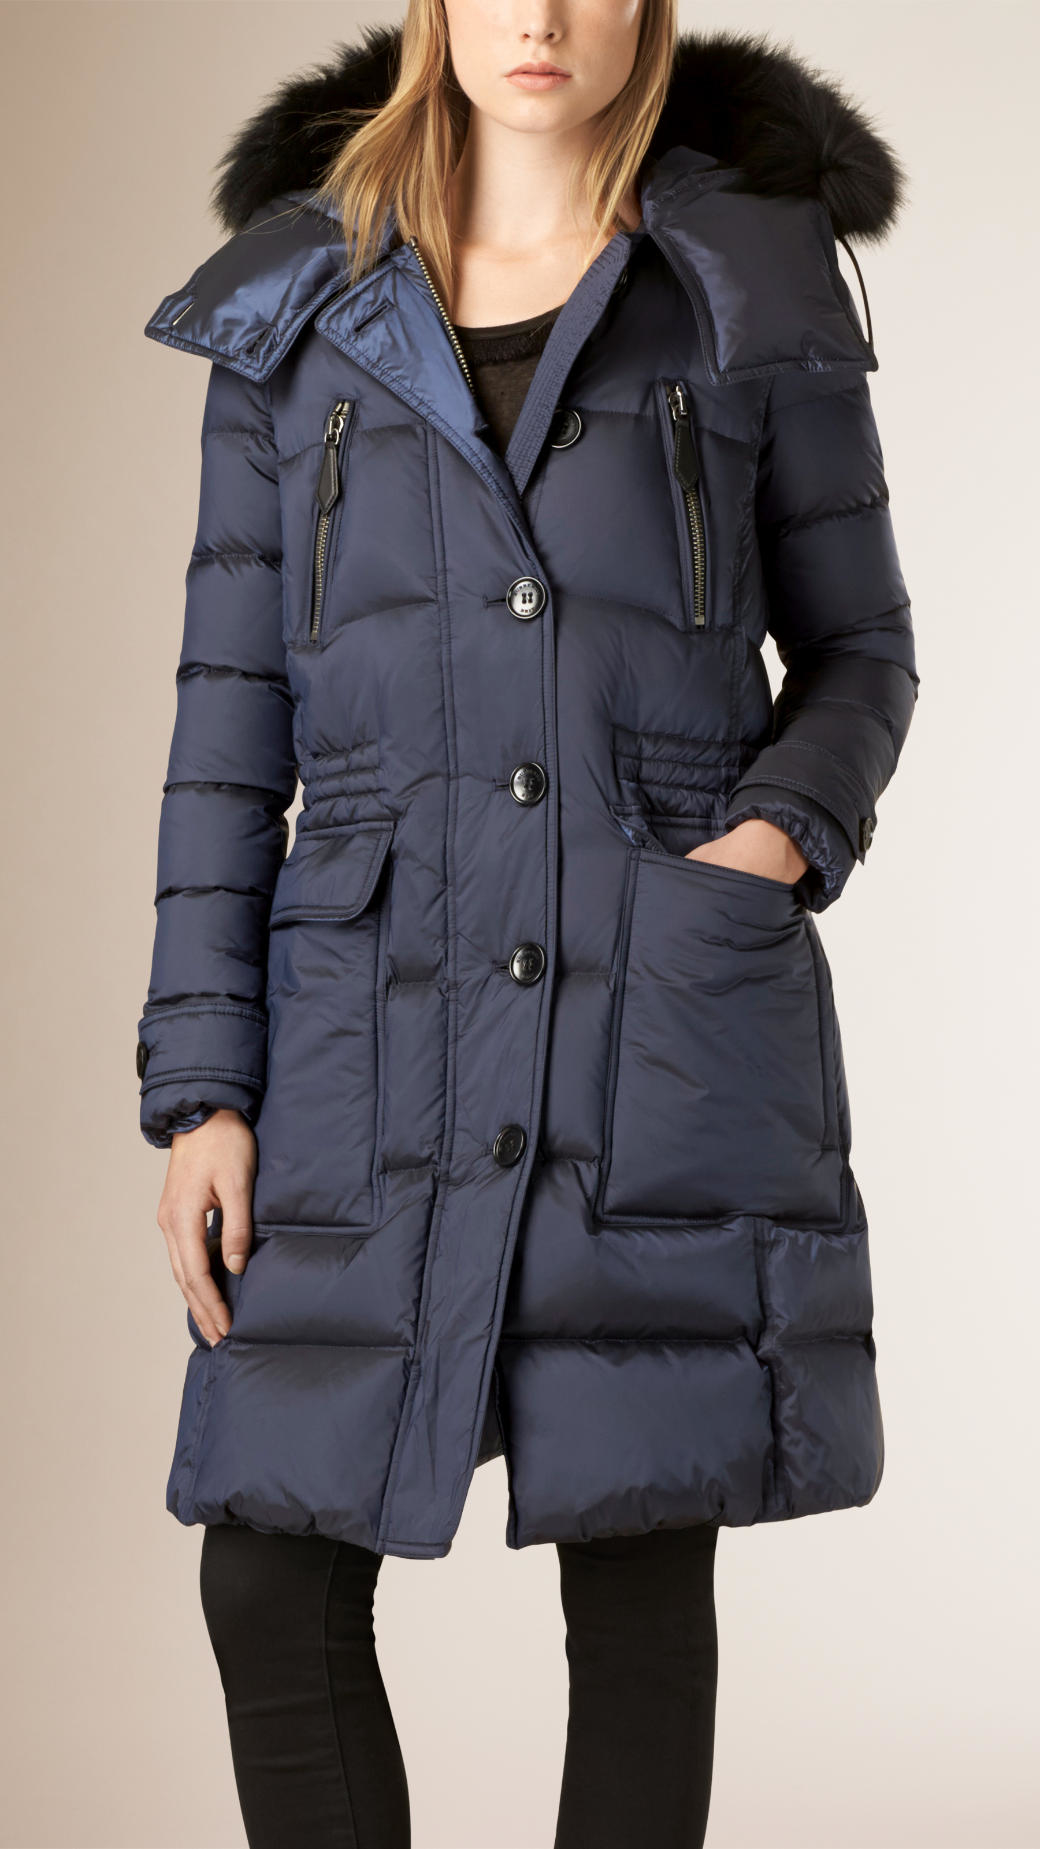 Discount Factory Outlet Burberry Detachable Hood Fur Trim Down-Filled Puffer Coat Clearance Enjoy For Cheap P47gPeP